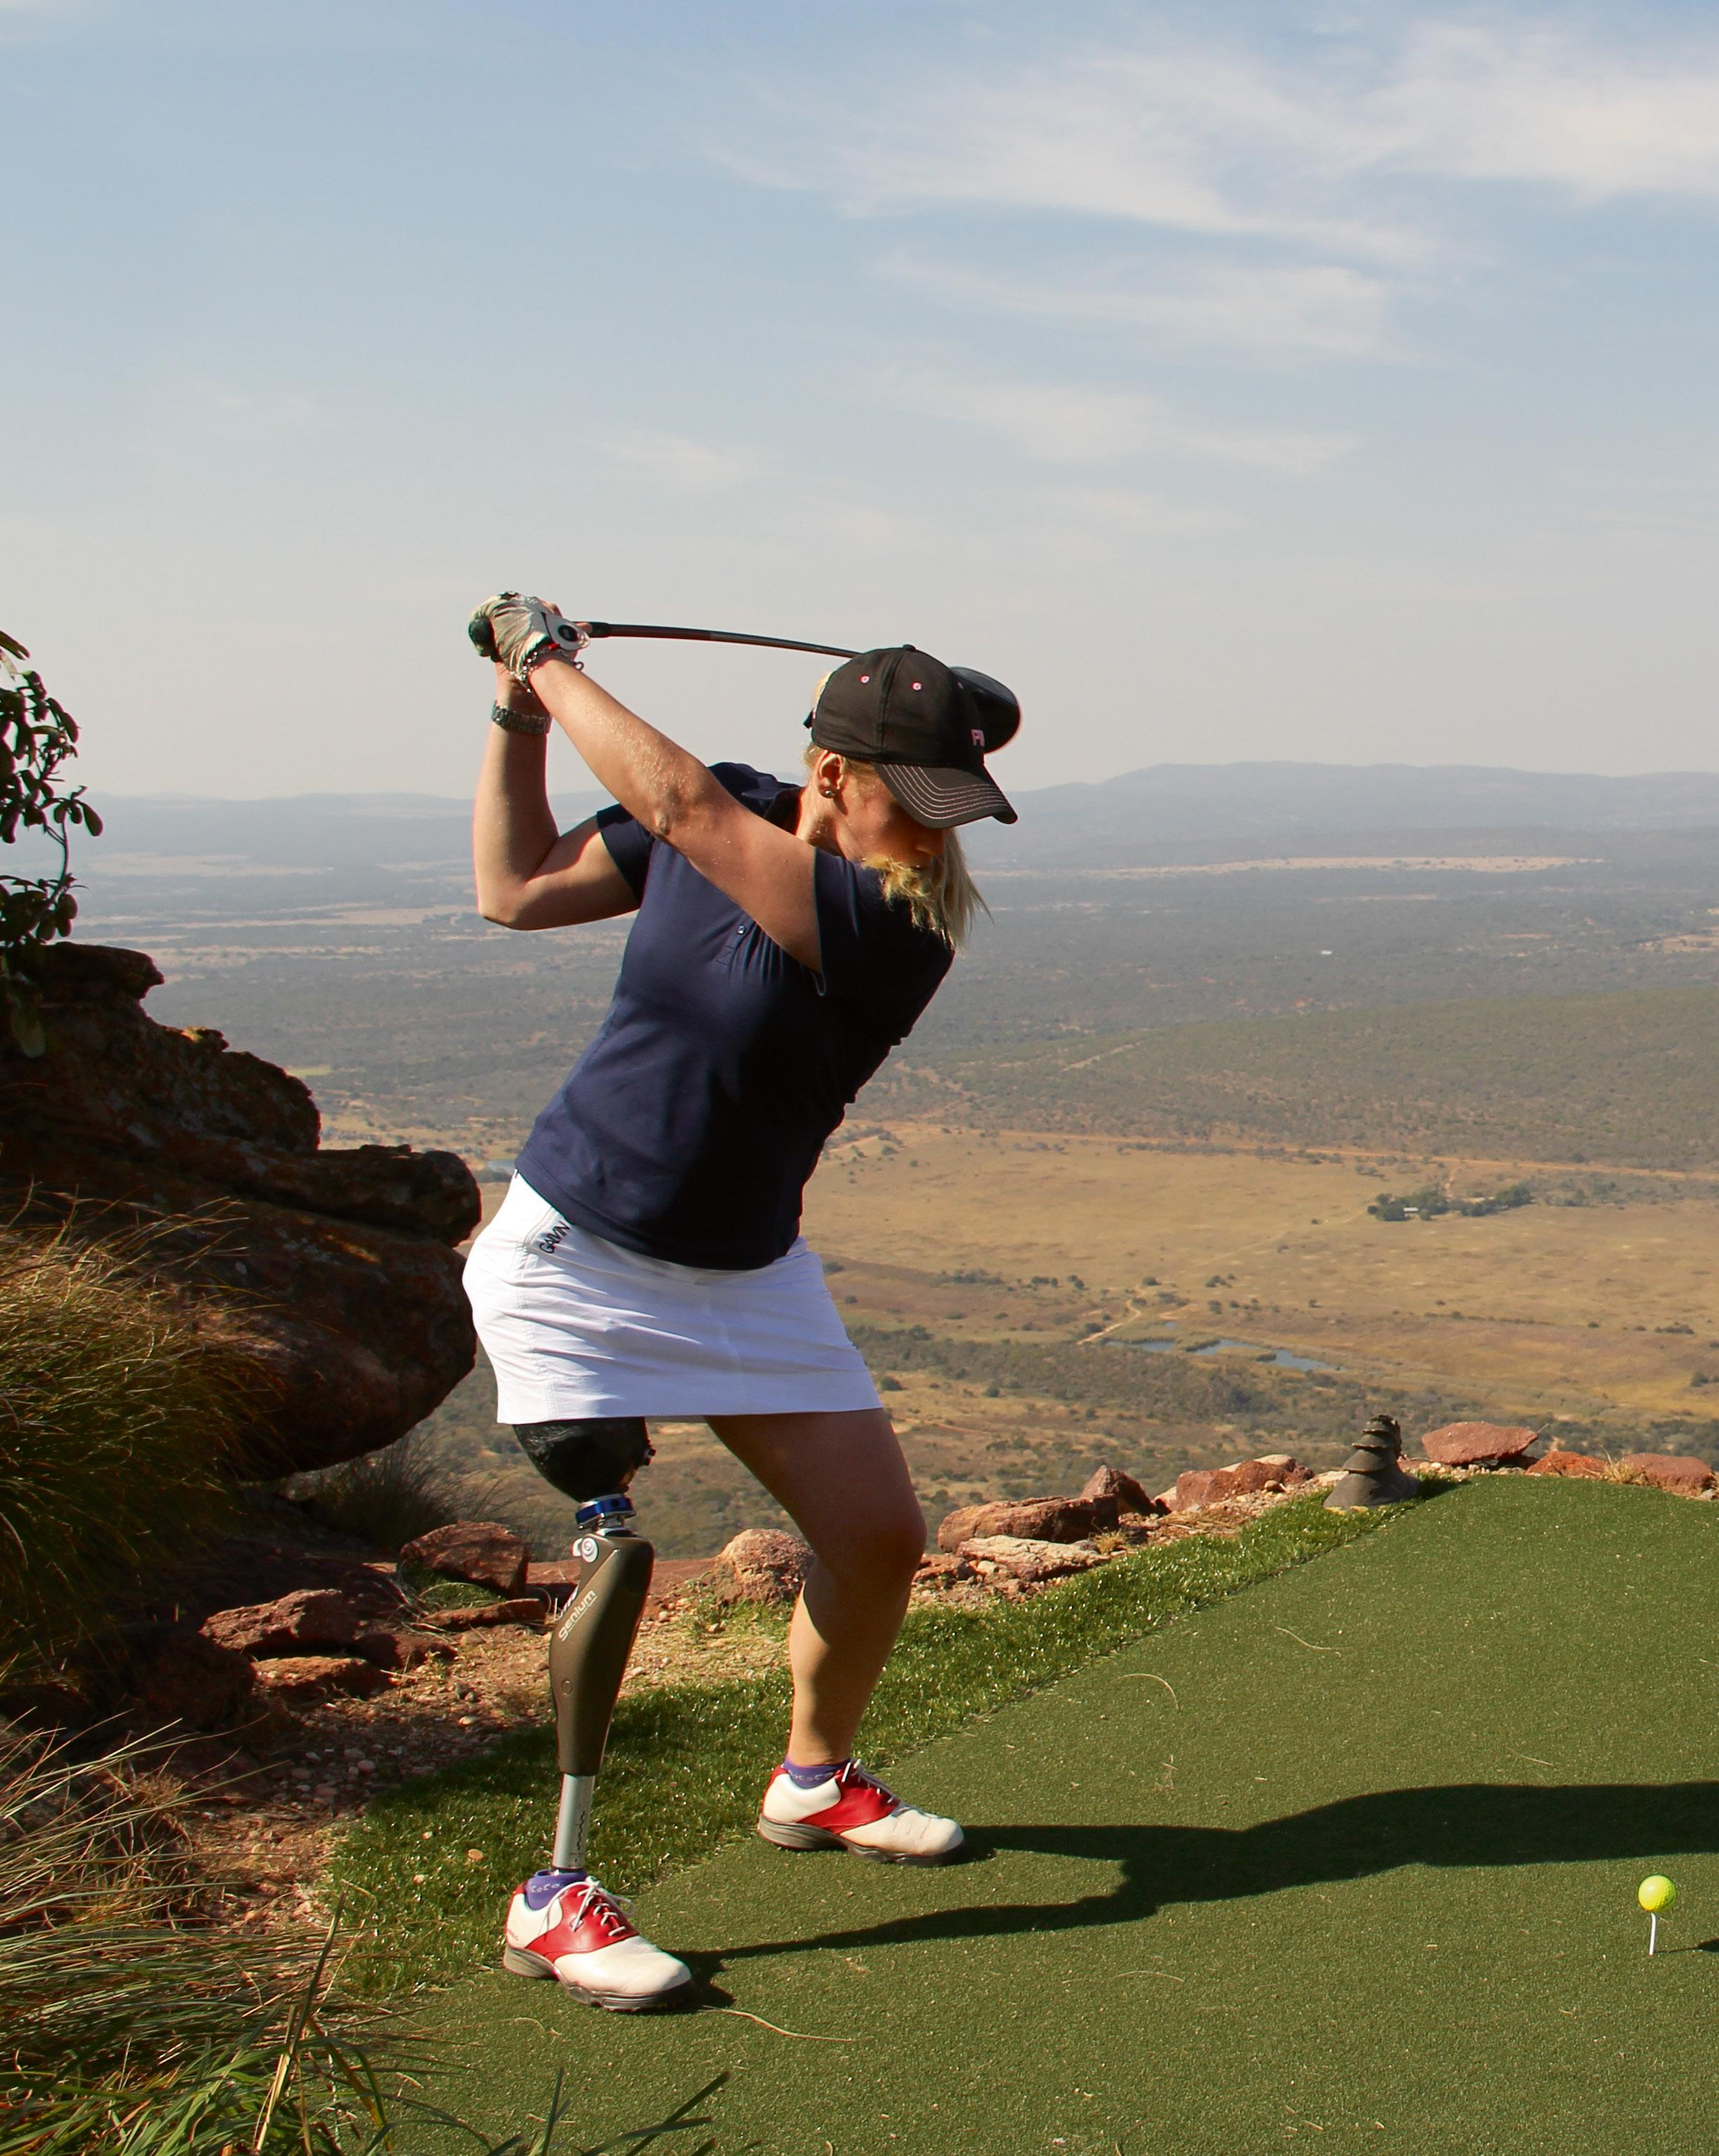 Page 14 of Facing the unknown Swedish professional golfer Caroline Mohr fought her way back onto the course after she had to have one of her legs amputated